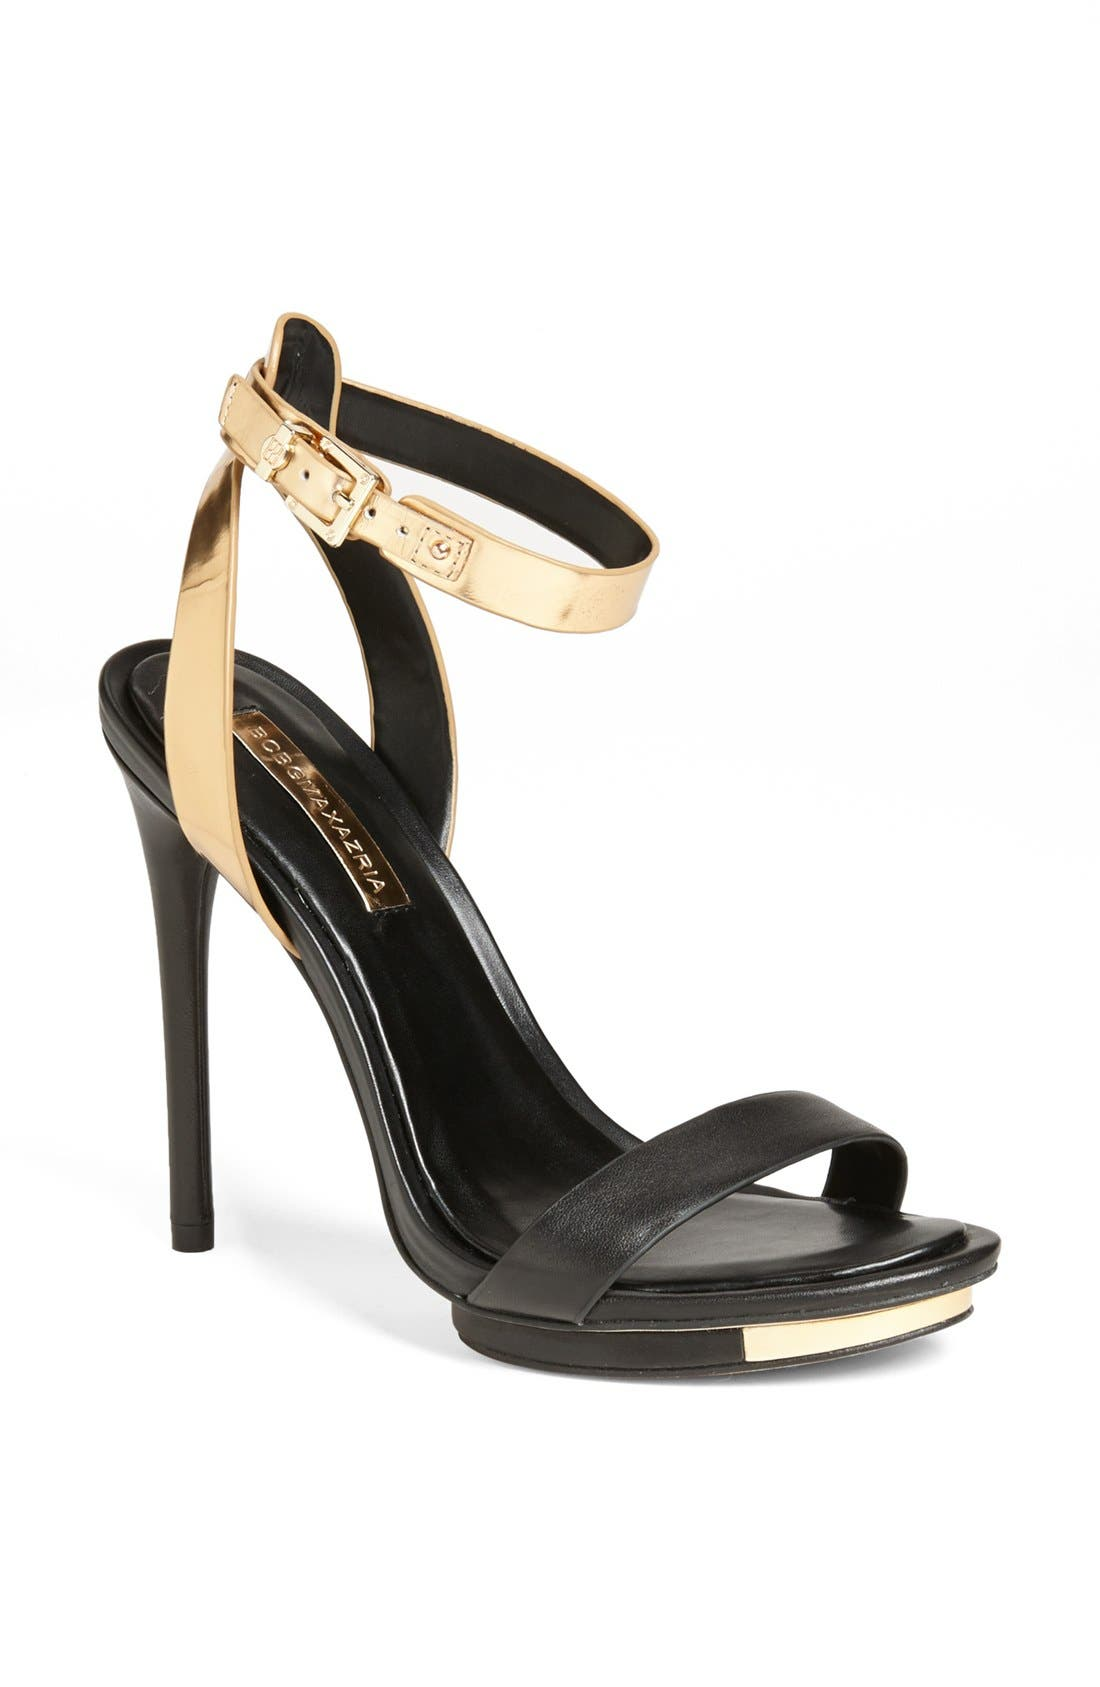 Main Image - BCBGMAXAZRIA 'Finite' Sandal